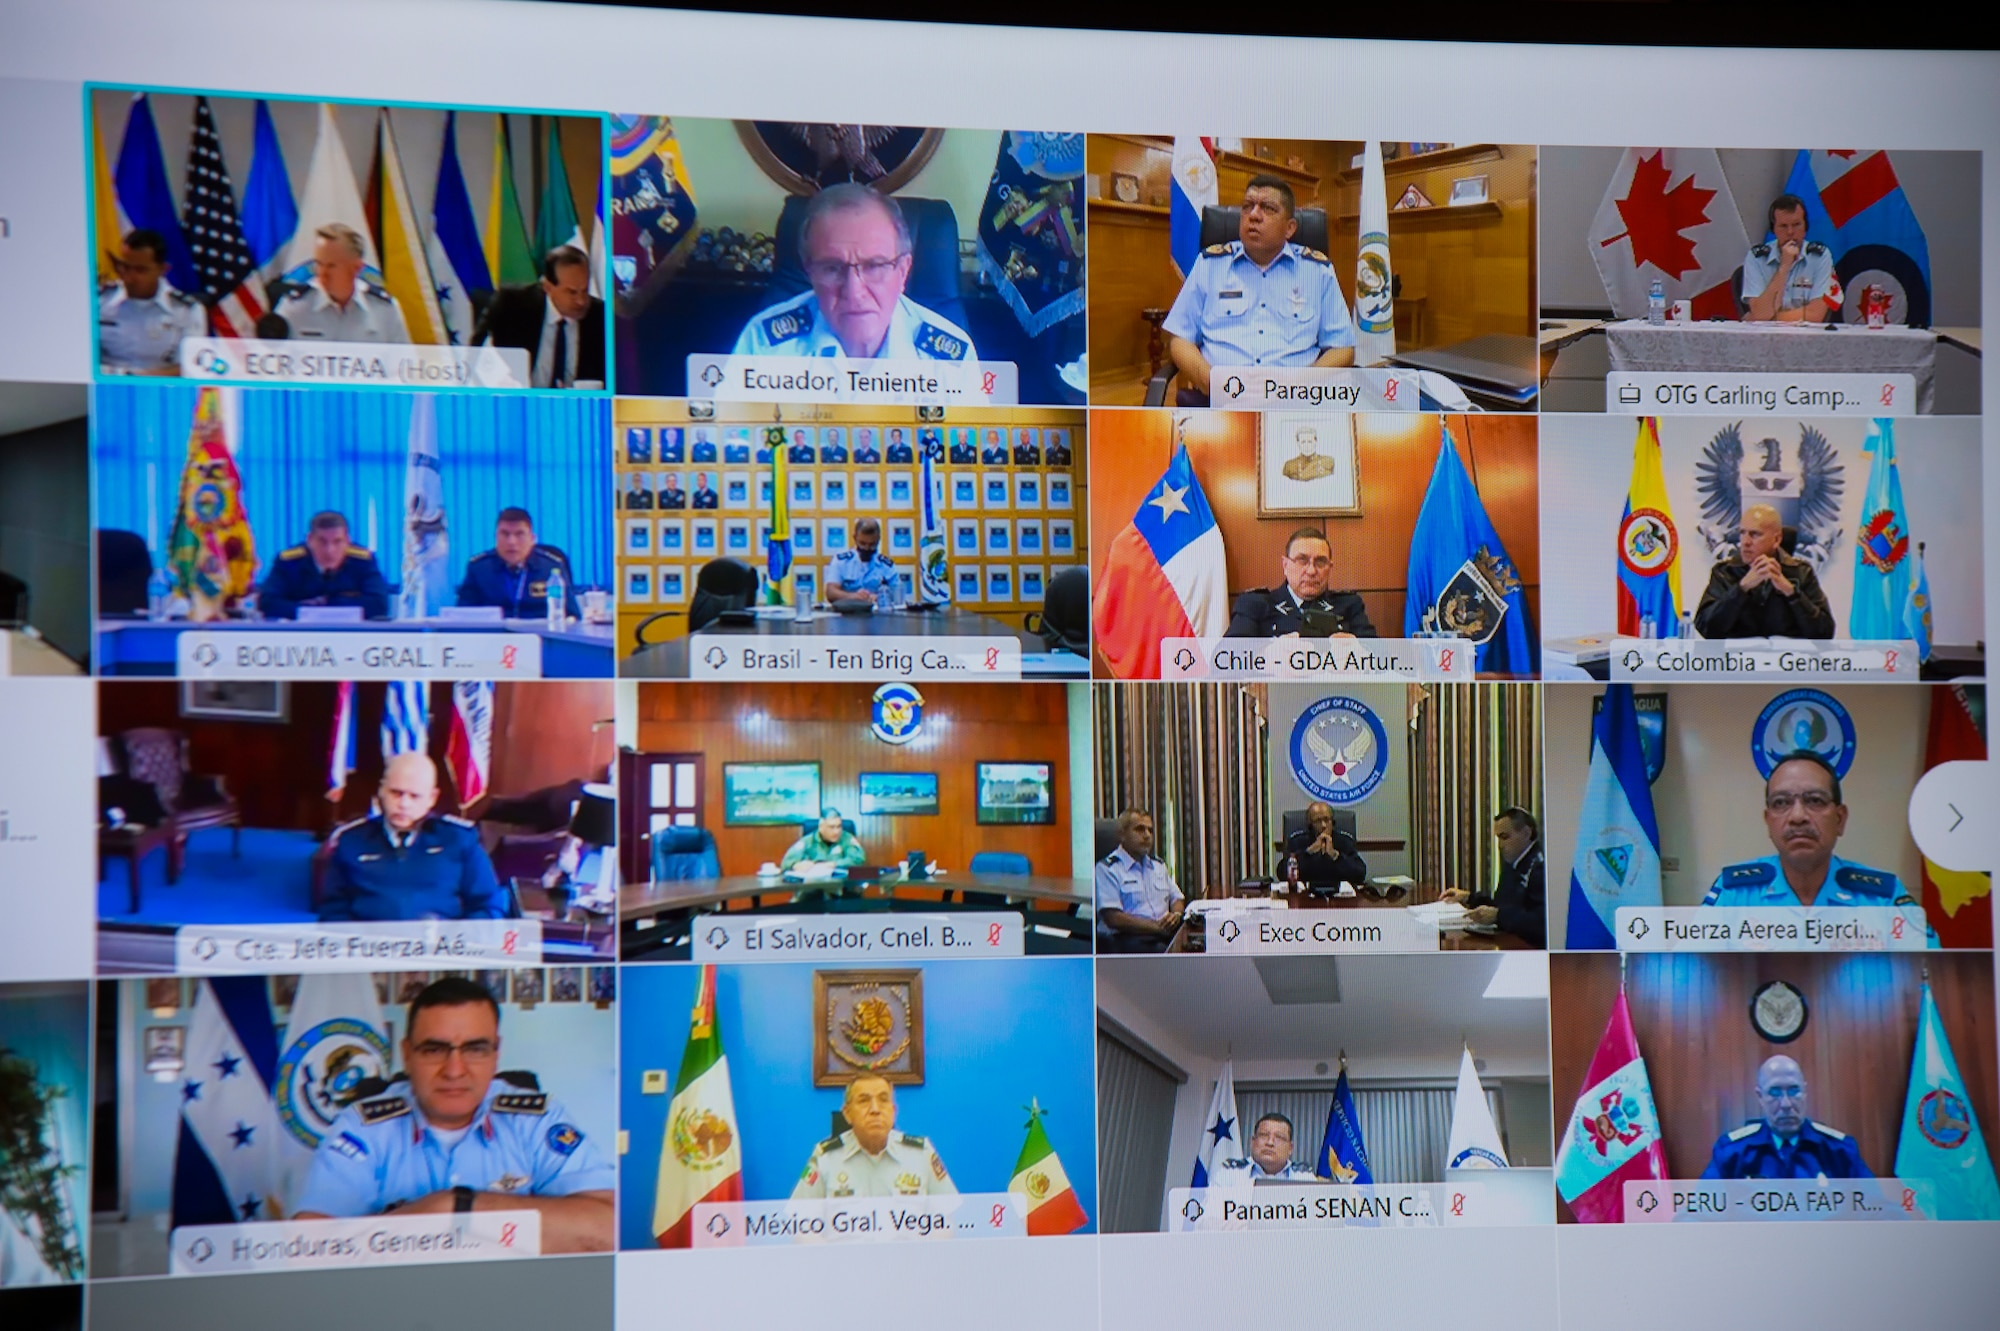 screen view of virtual conference